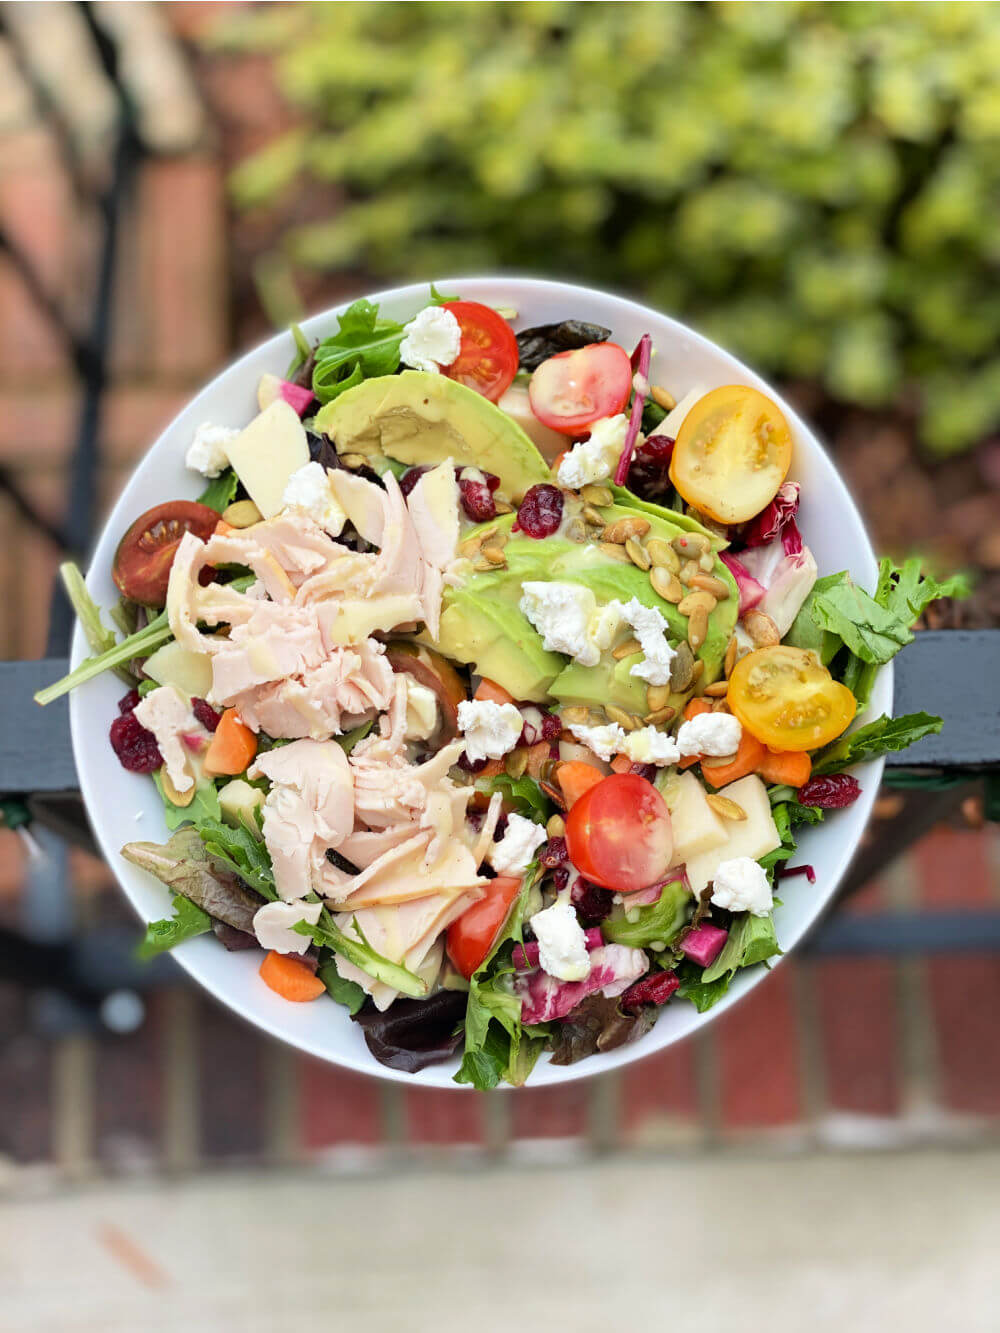 salad with deli turkey and lots of toppings